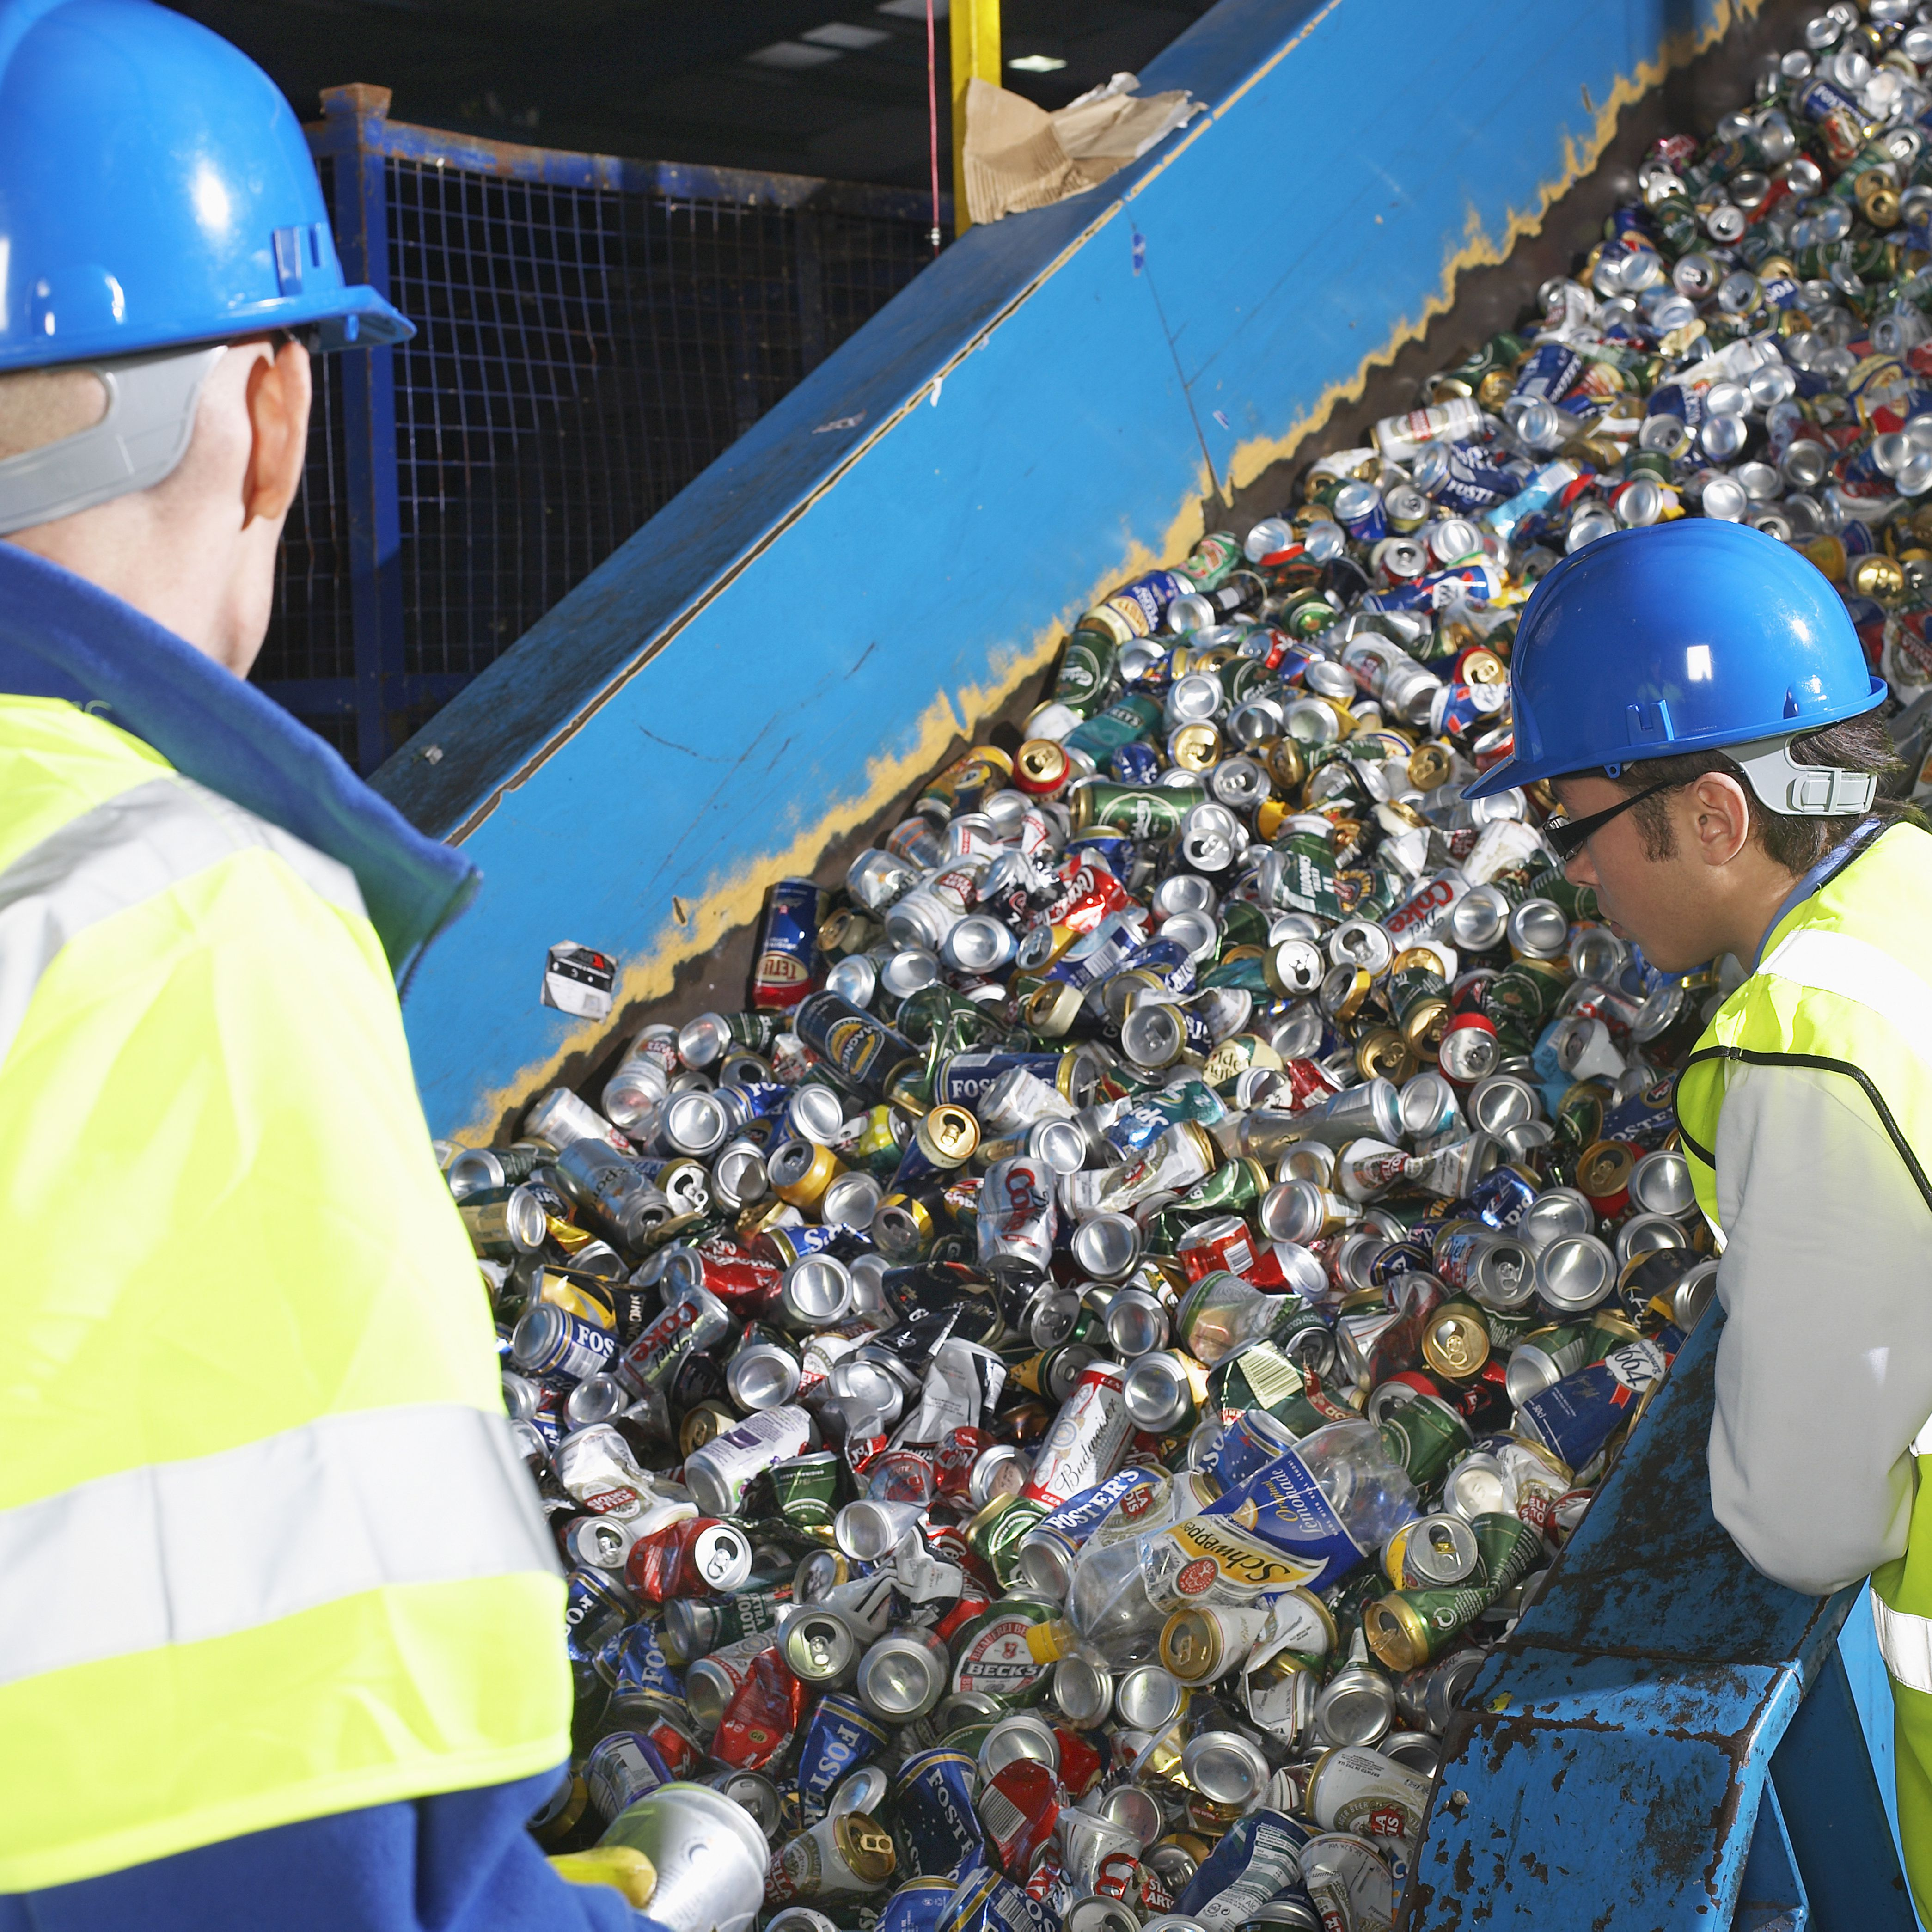 An Introduction To Solid Waste Management